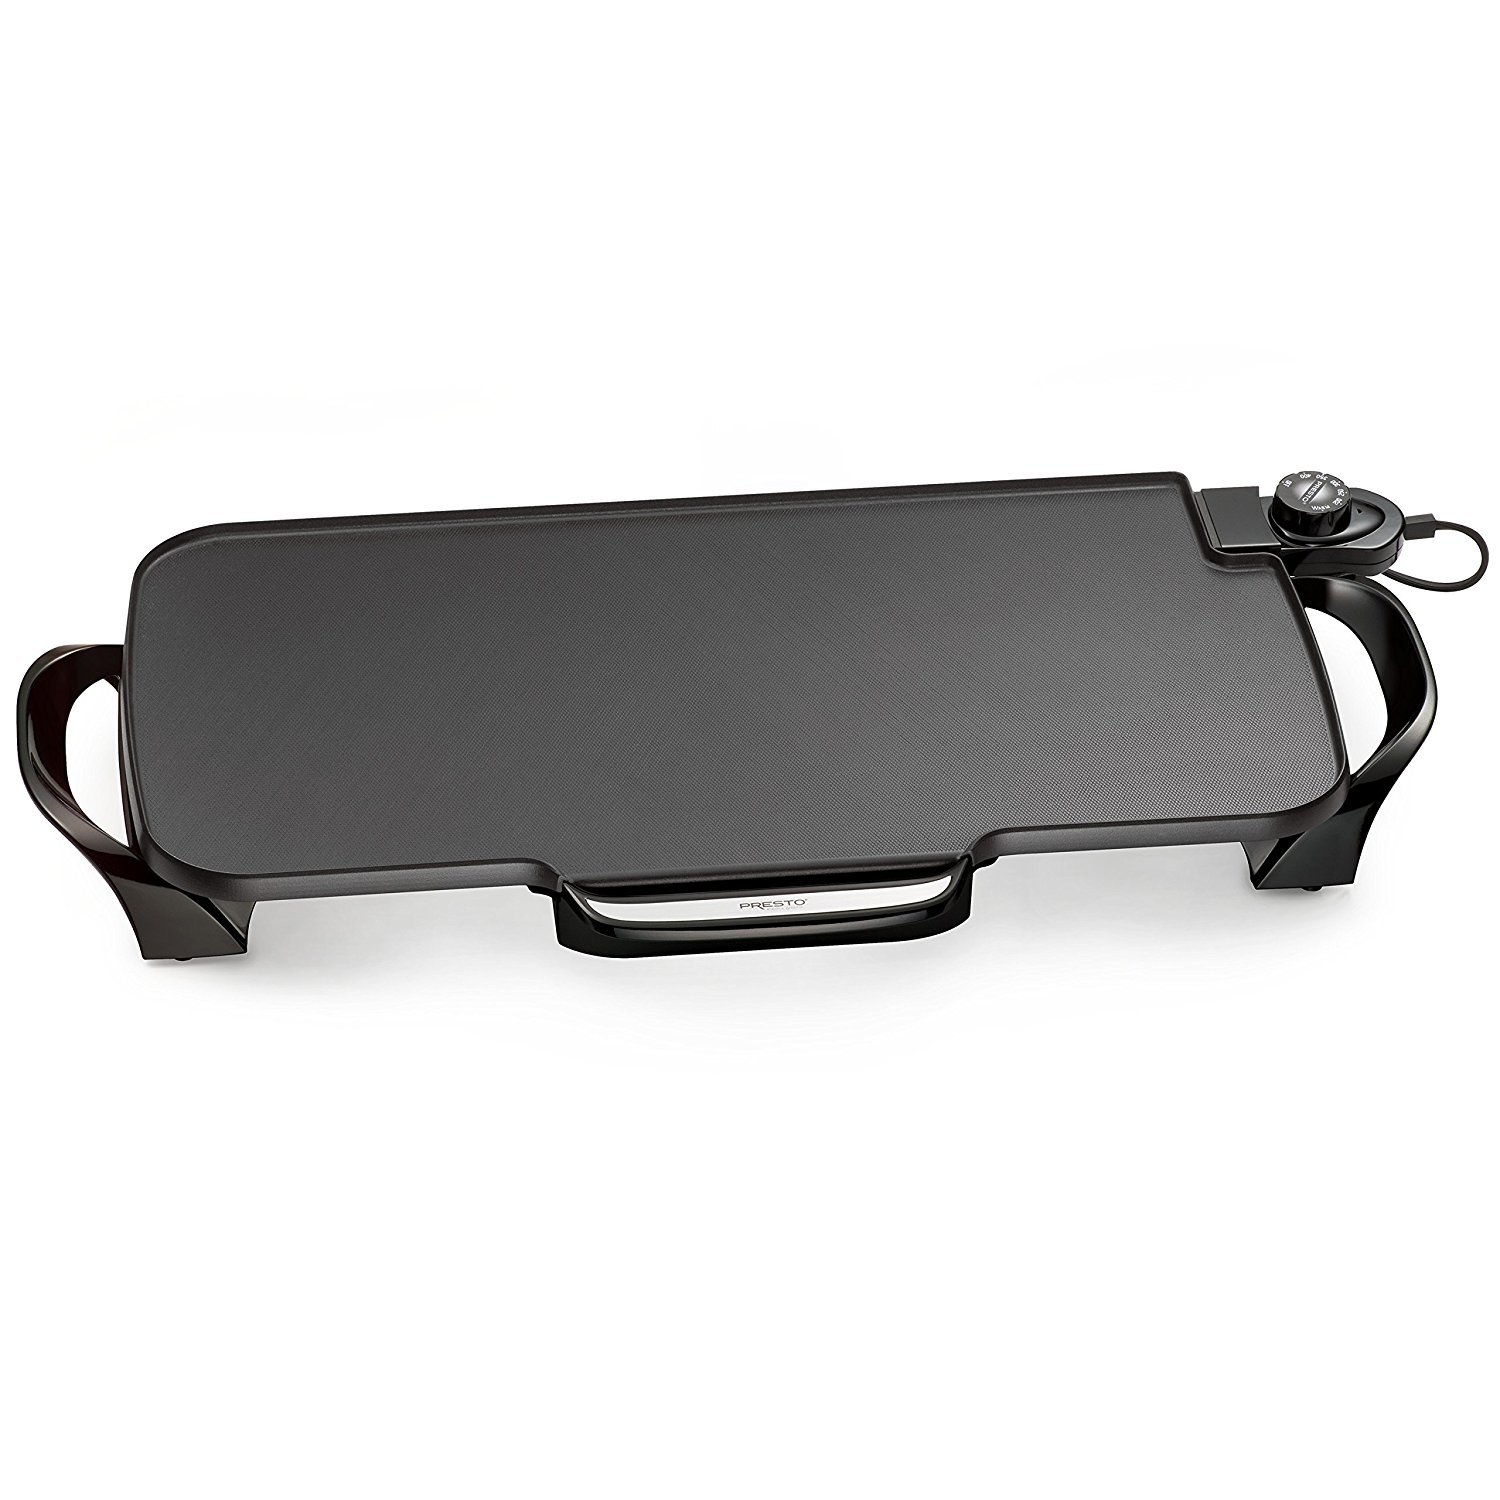 Presto 07061 22-inch Electric Griddle With Removable Handles Presto.